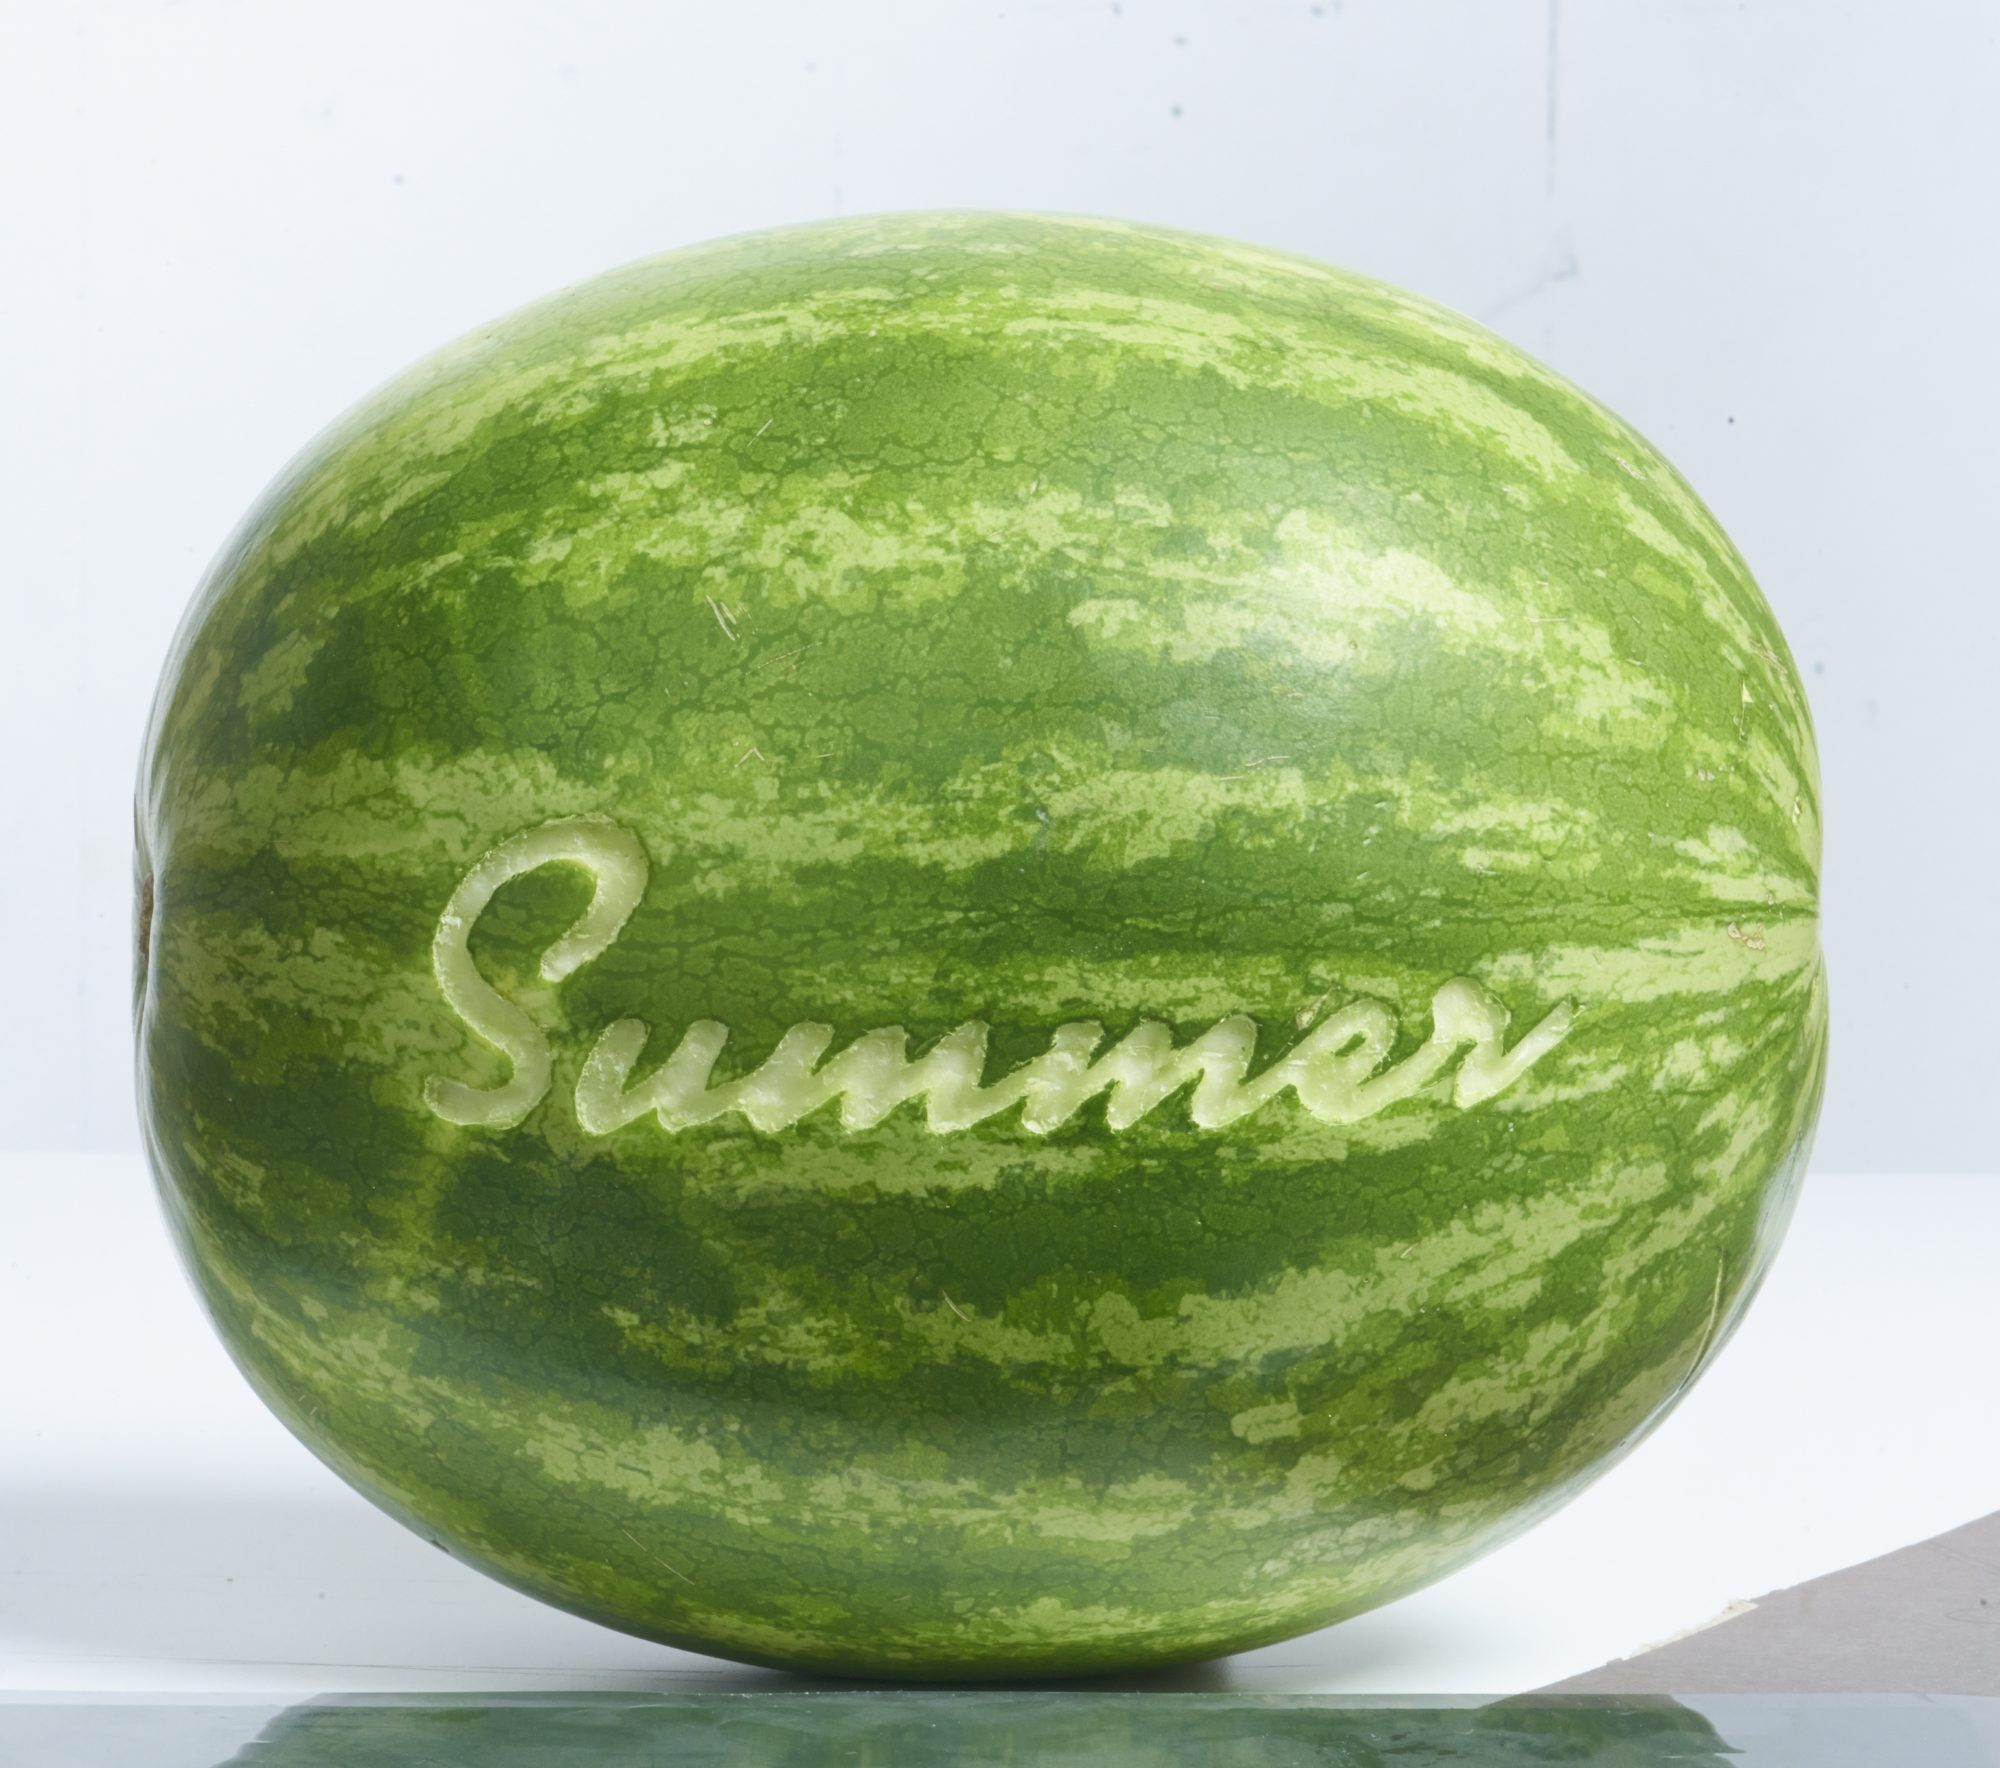 102423822-Watermelon-Summer-Photo-by-Meredith.jpg